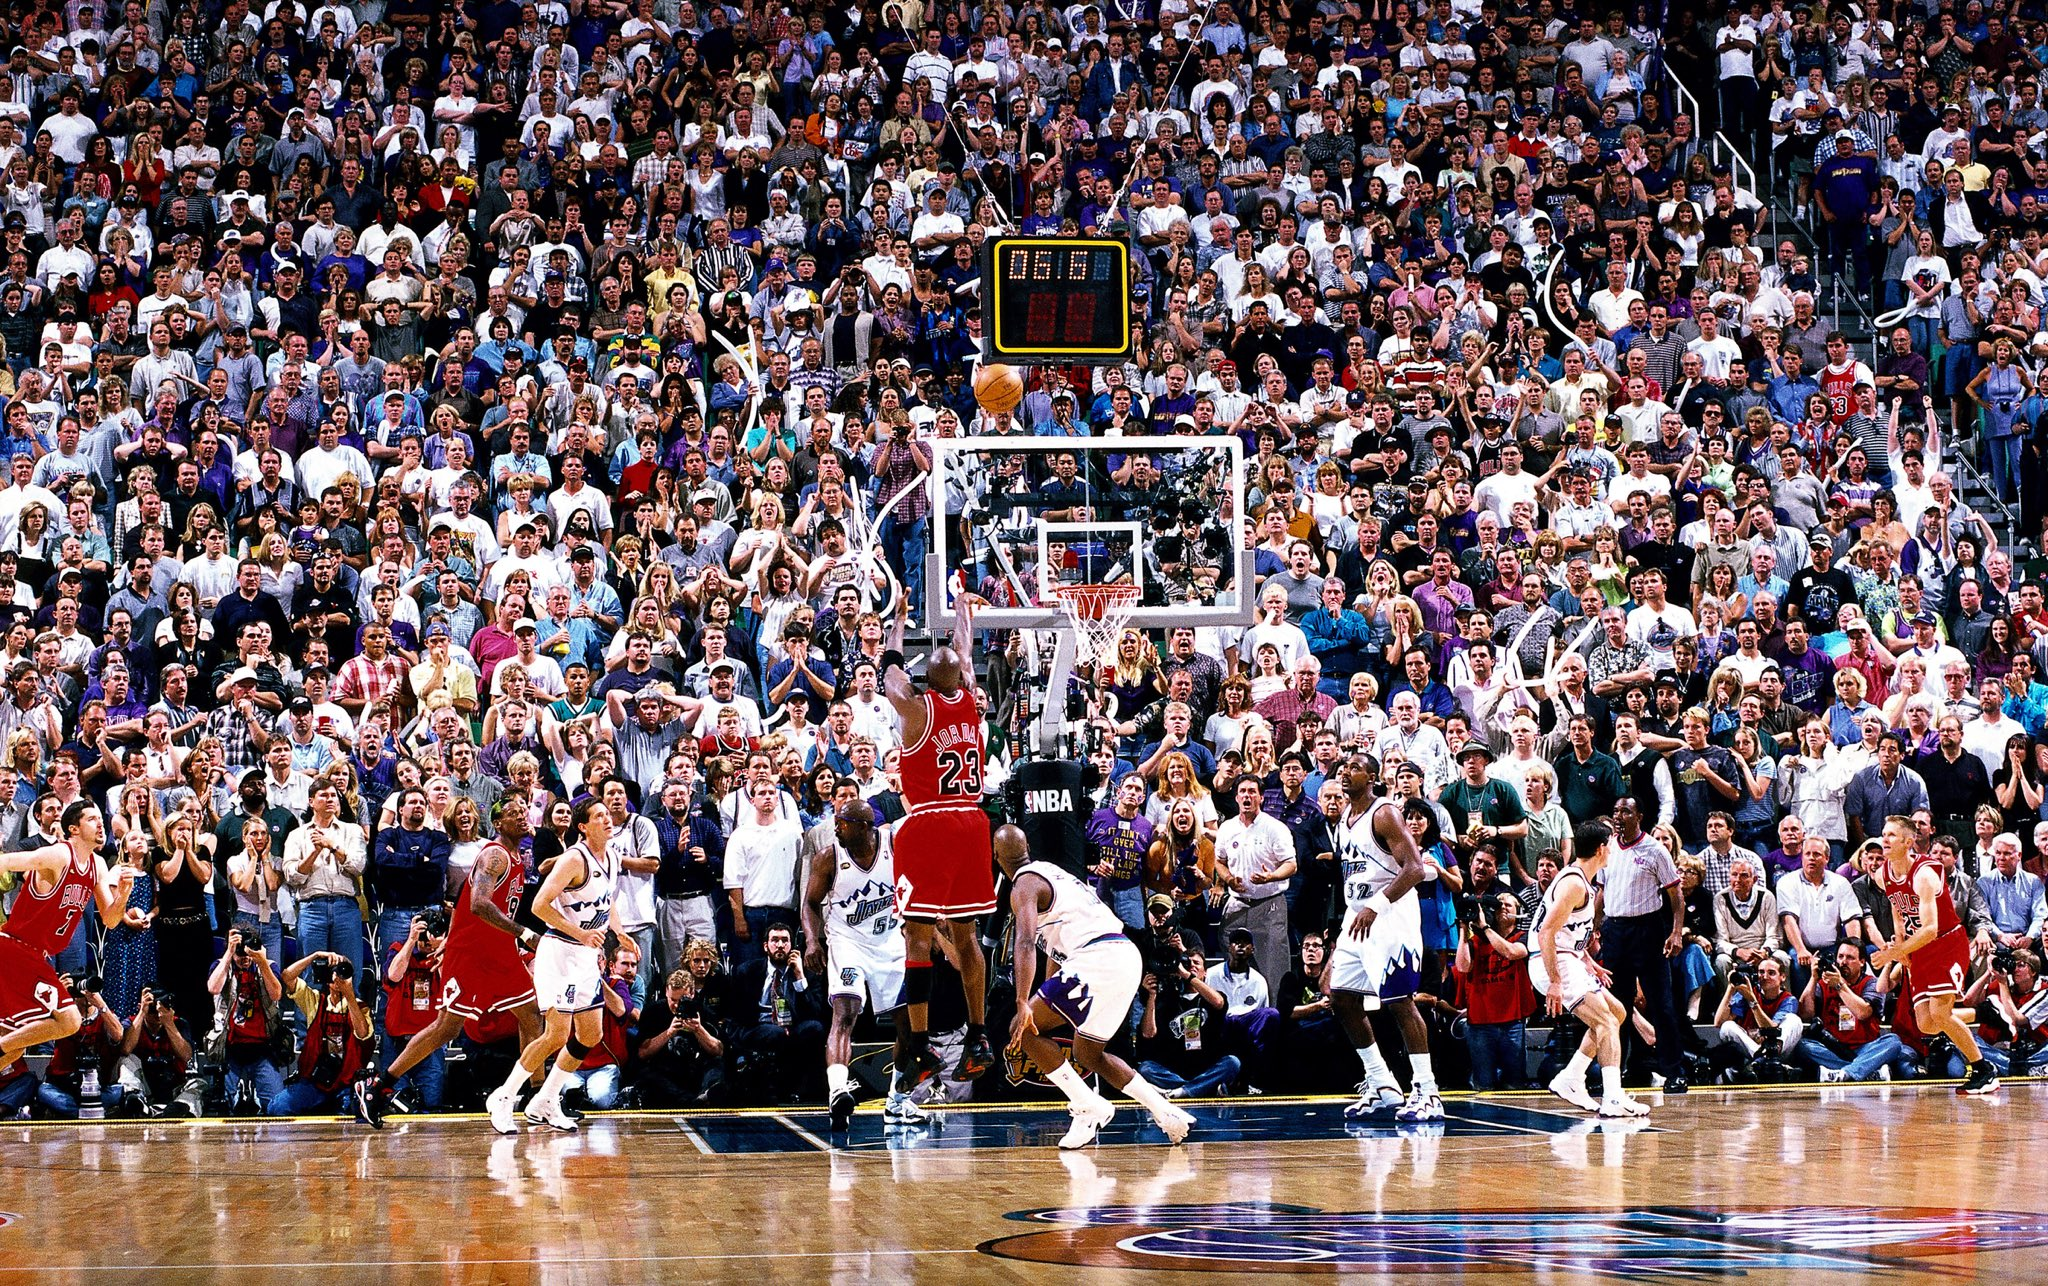 20 years ago today, Michael Jordan buried the #LastShot to secure his sixth title with the @chicagobulls! https://t.co/oZT2Q8GRKo